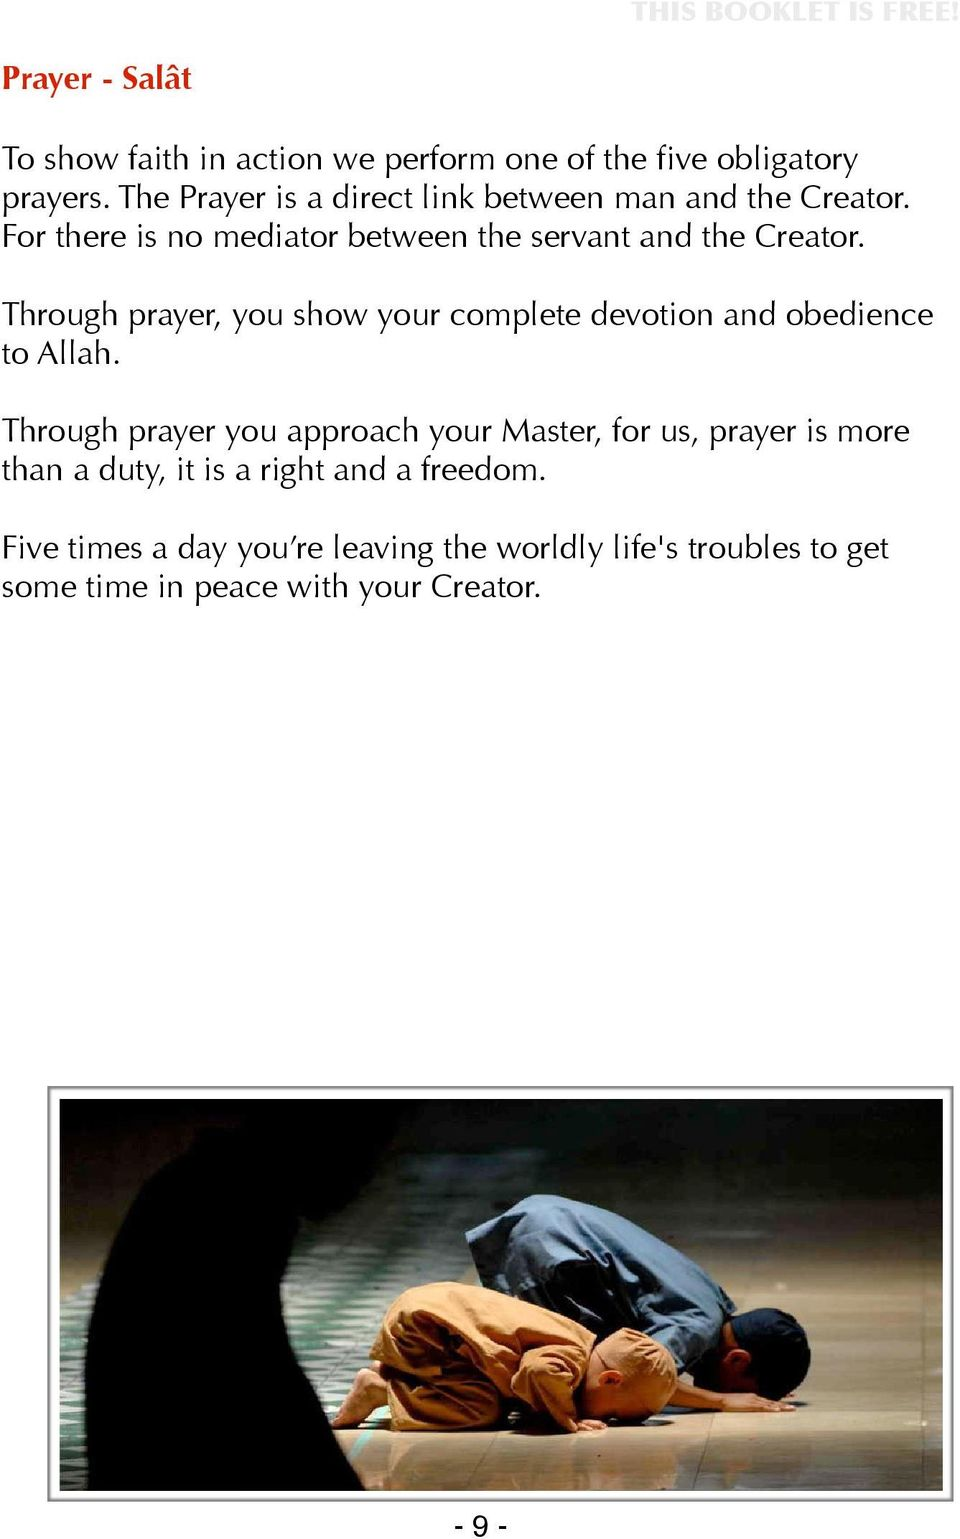 Through prayer, you show your complete devotion and obedience to Allah.